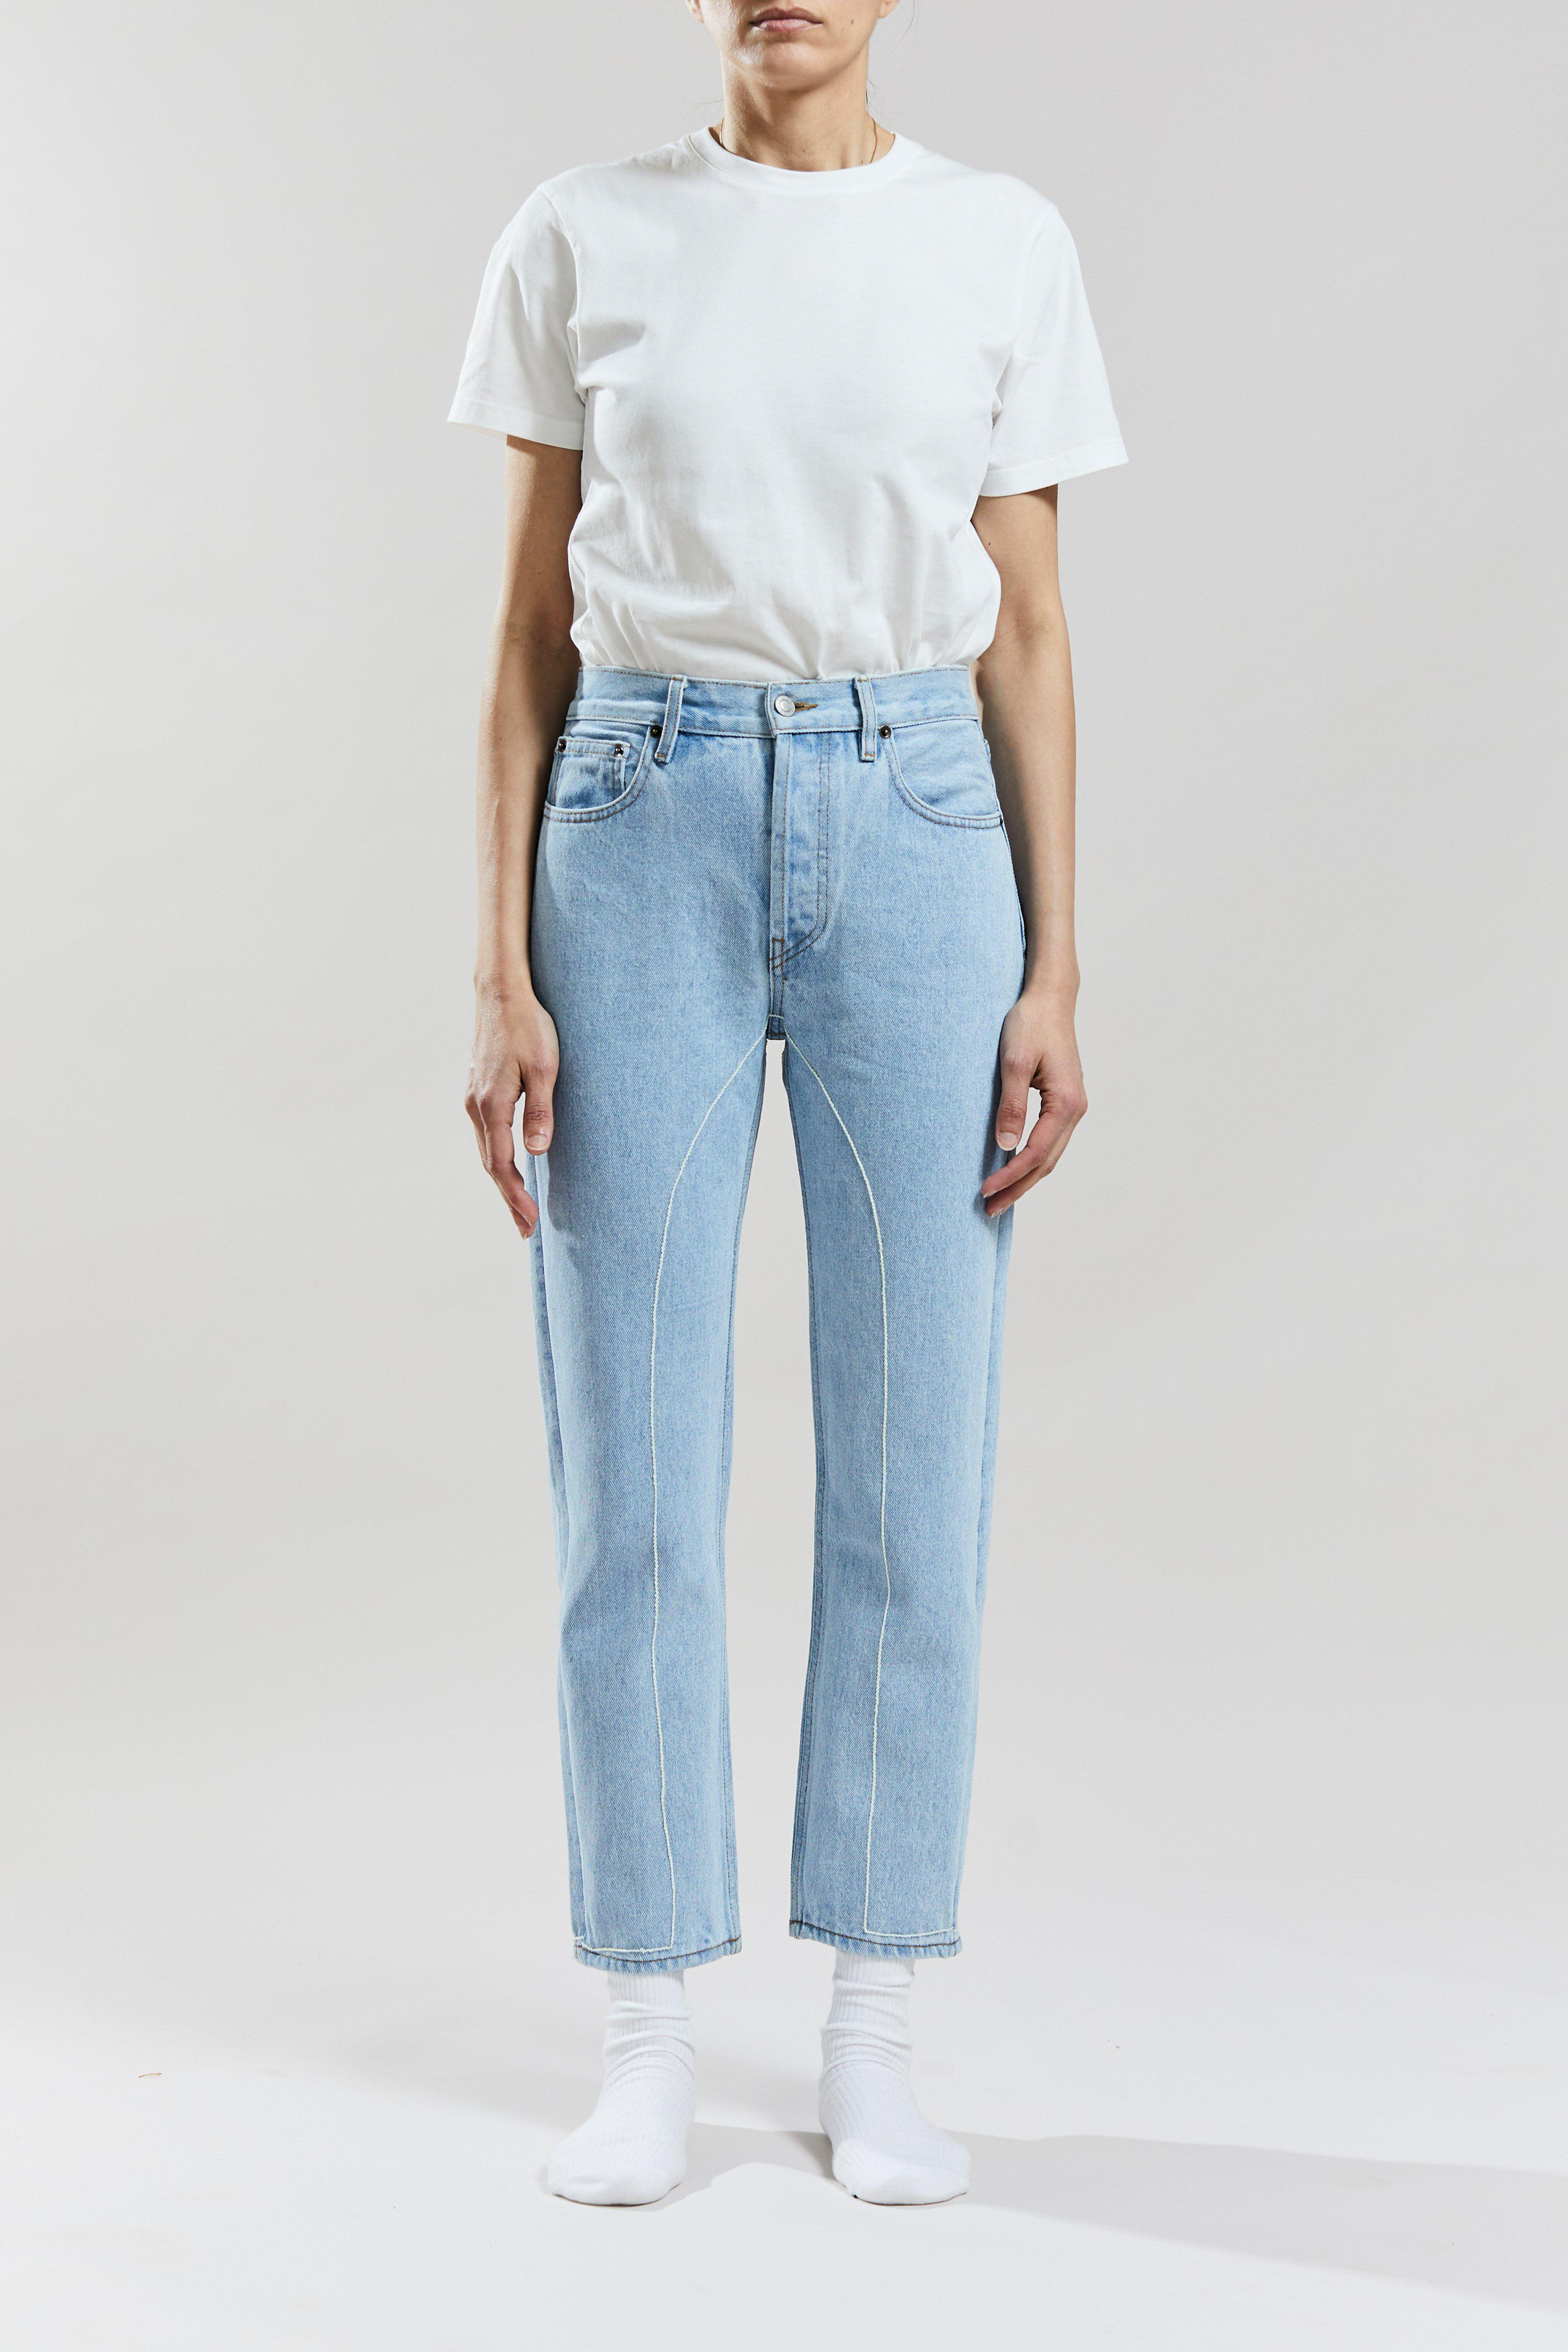 Sand Chaps Tate in Vintage Blue